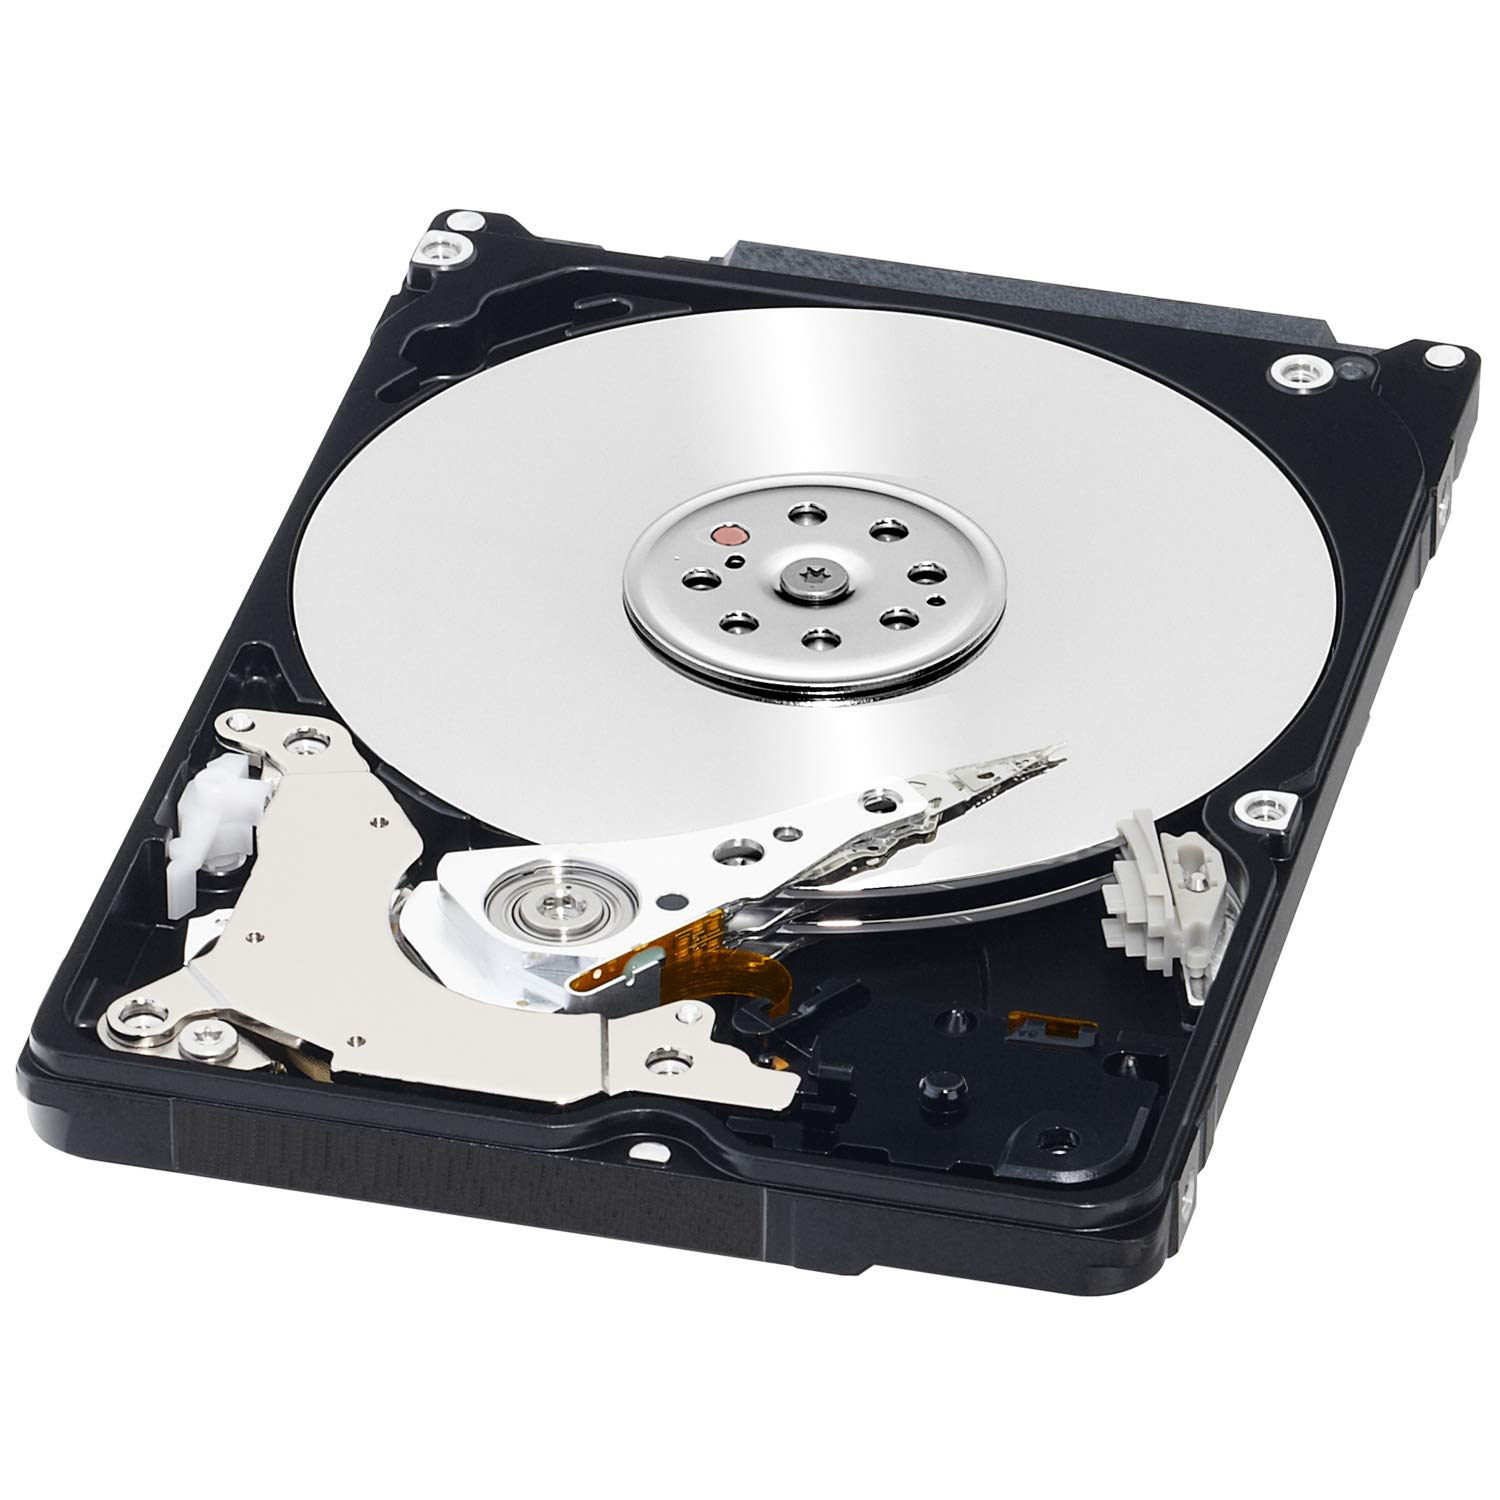 WD Black 1TB Performance Mobile Hard Disk Drive - 7200 RPM SATA 6 Gb/s 32MB Cache 9.5 MM 2.5 Inch - WD10JPLX by Western Digital (Image #6)